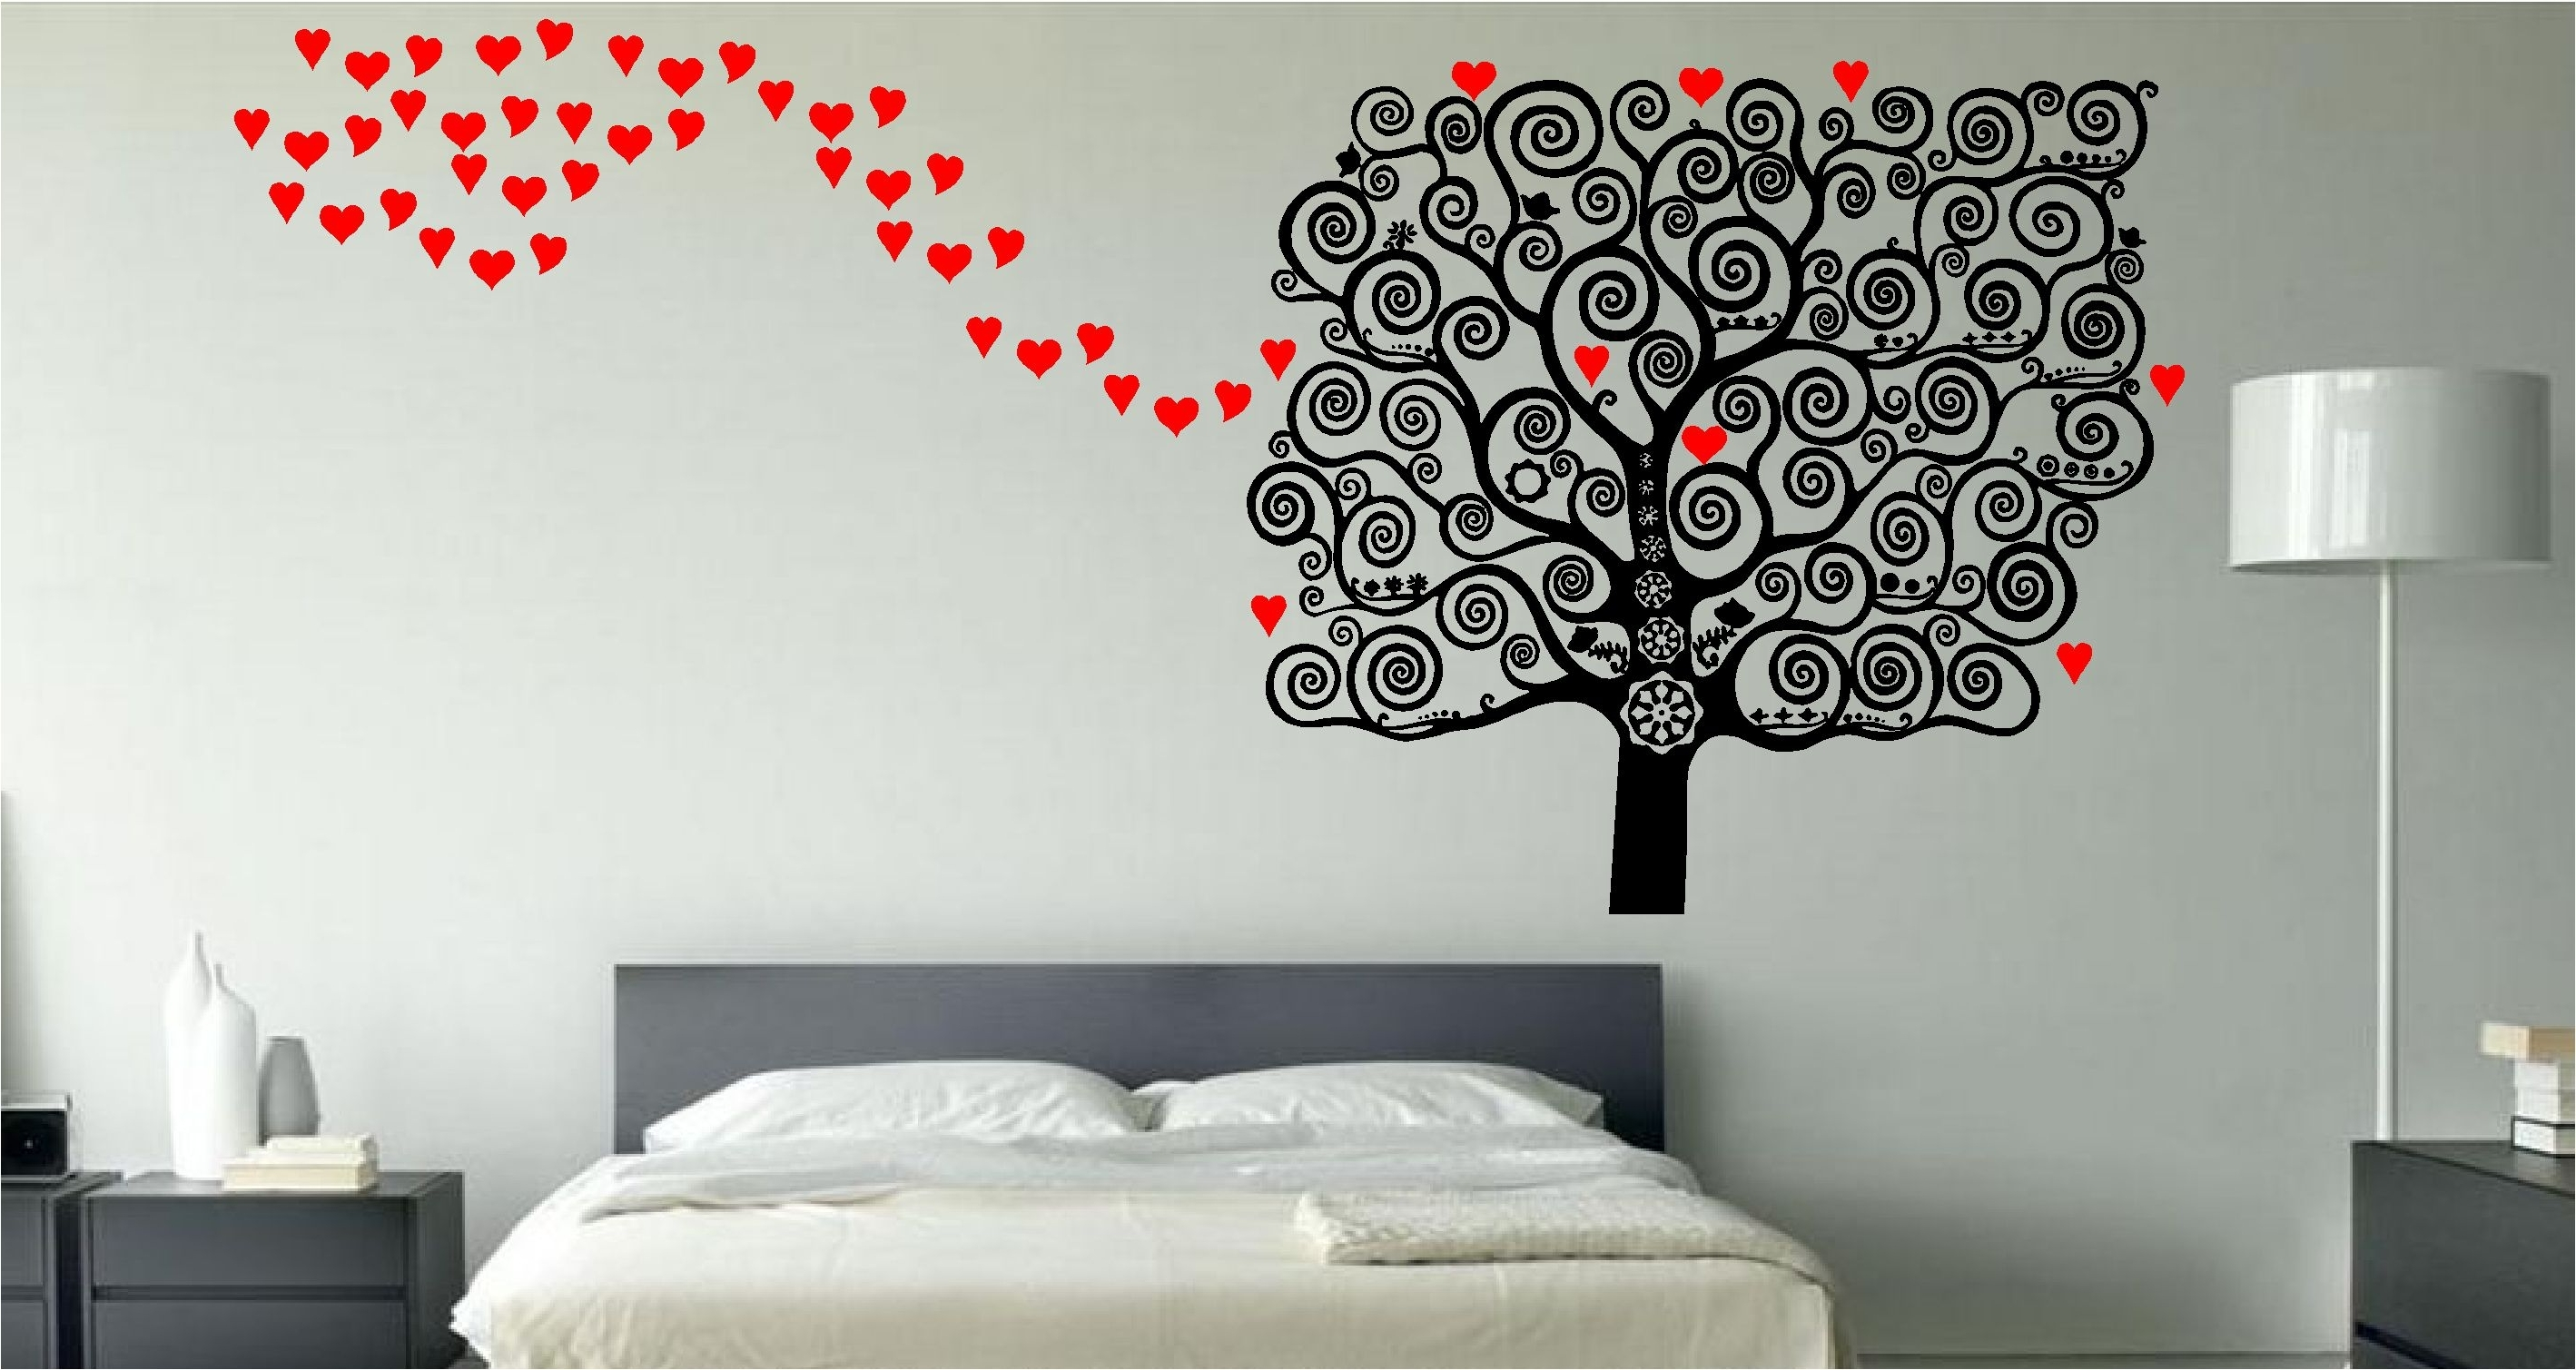 wood wall bedrooms i lovely bedroom have sign song master for of solomon decor